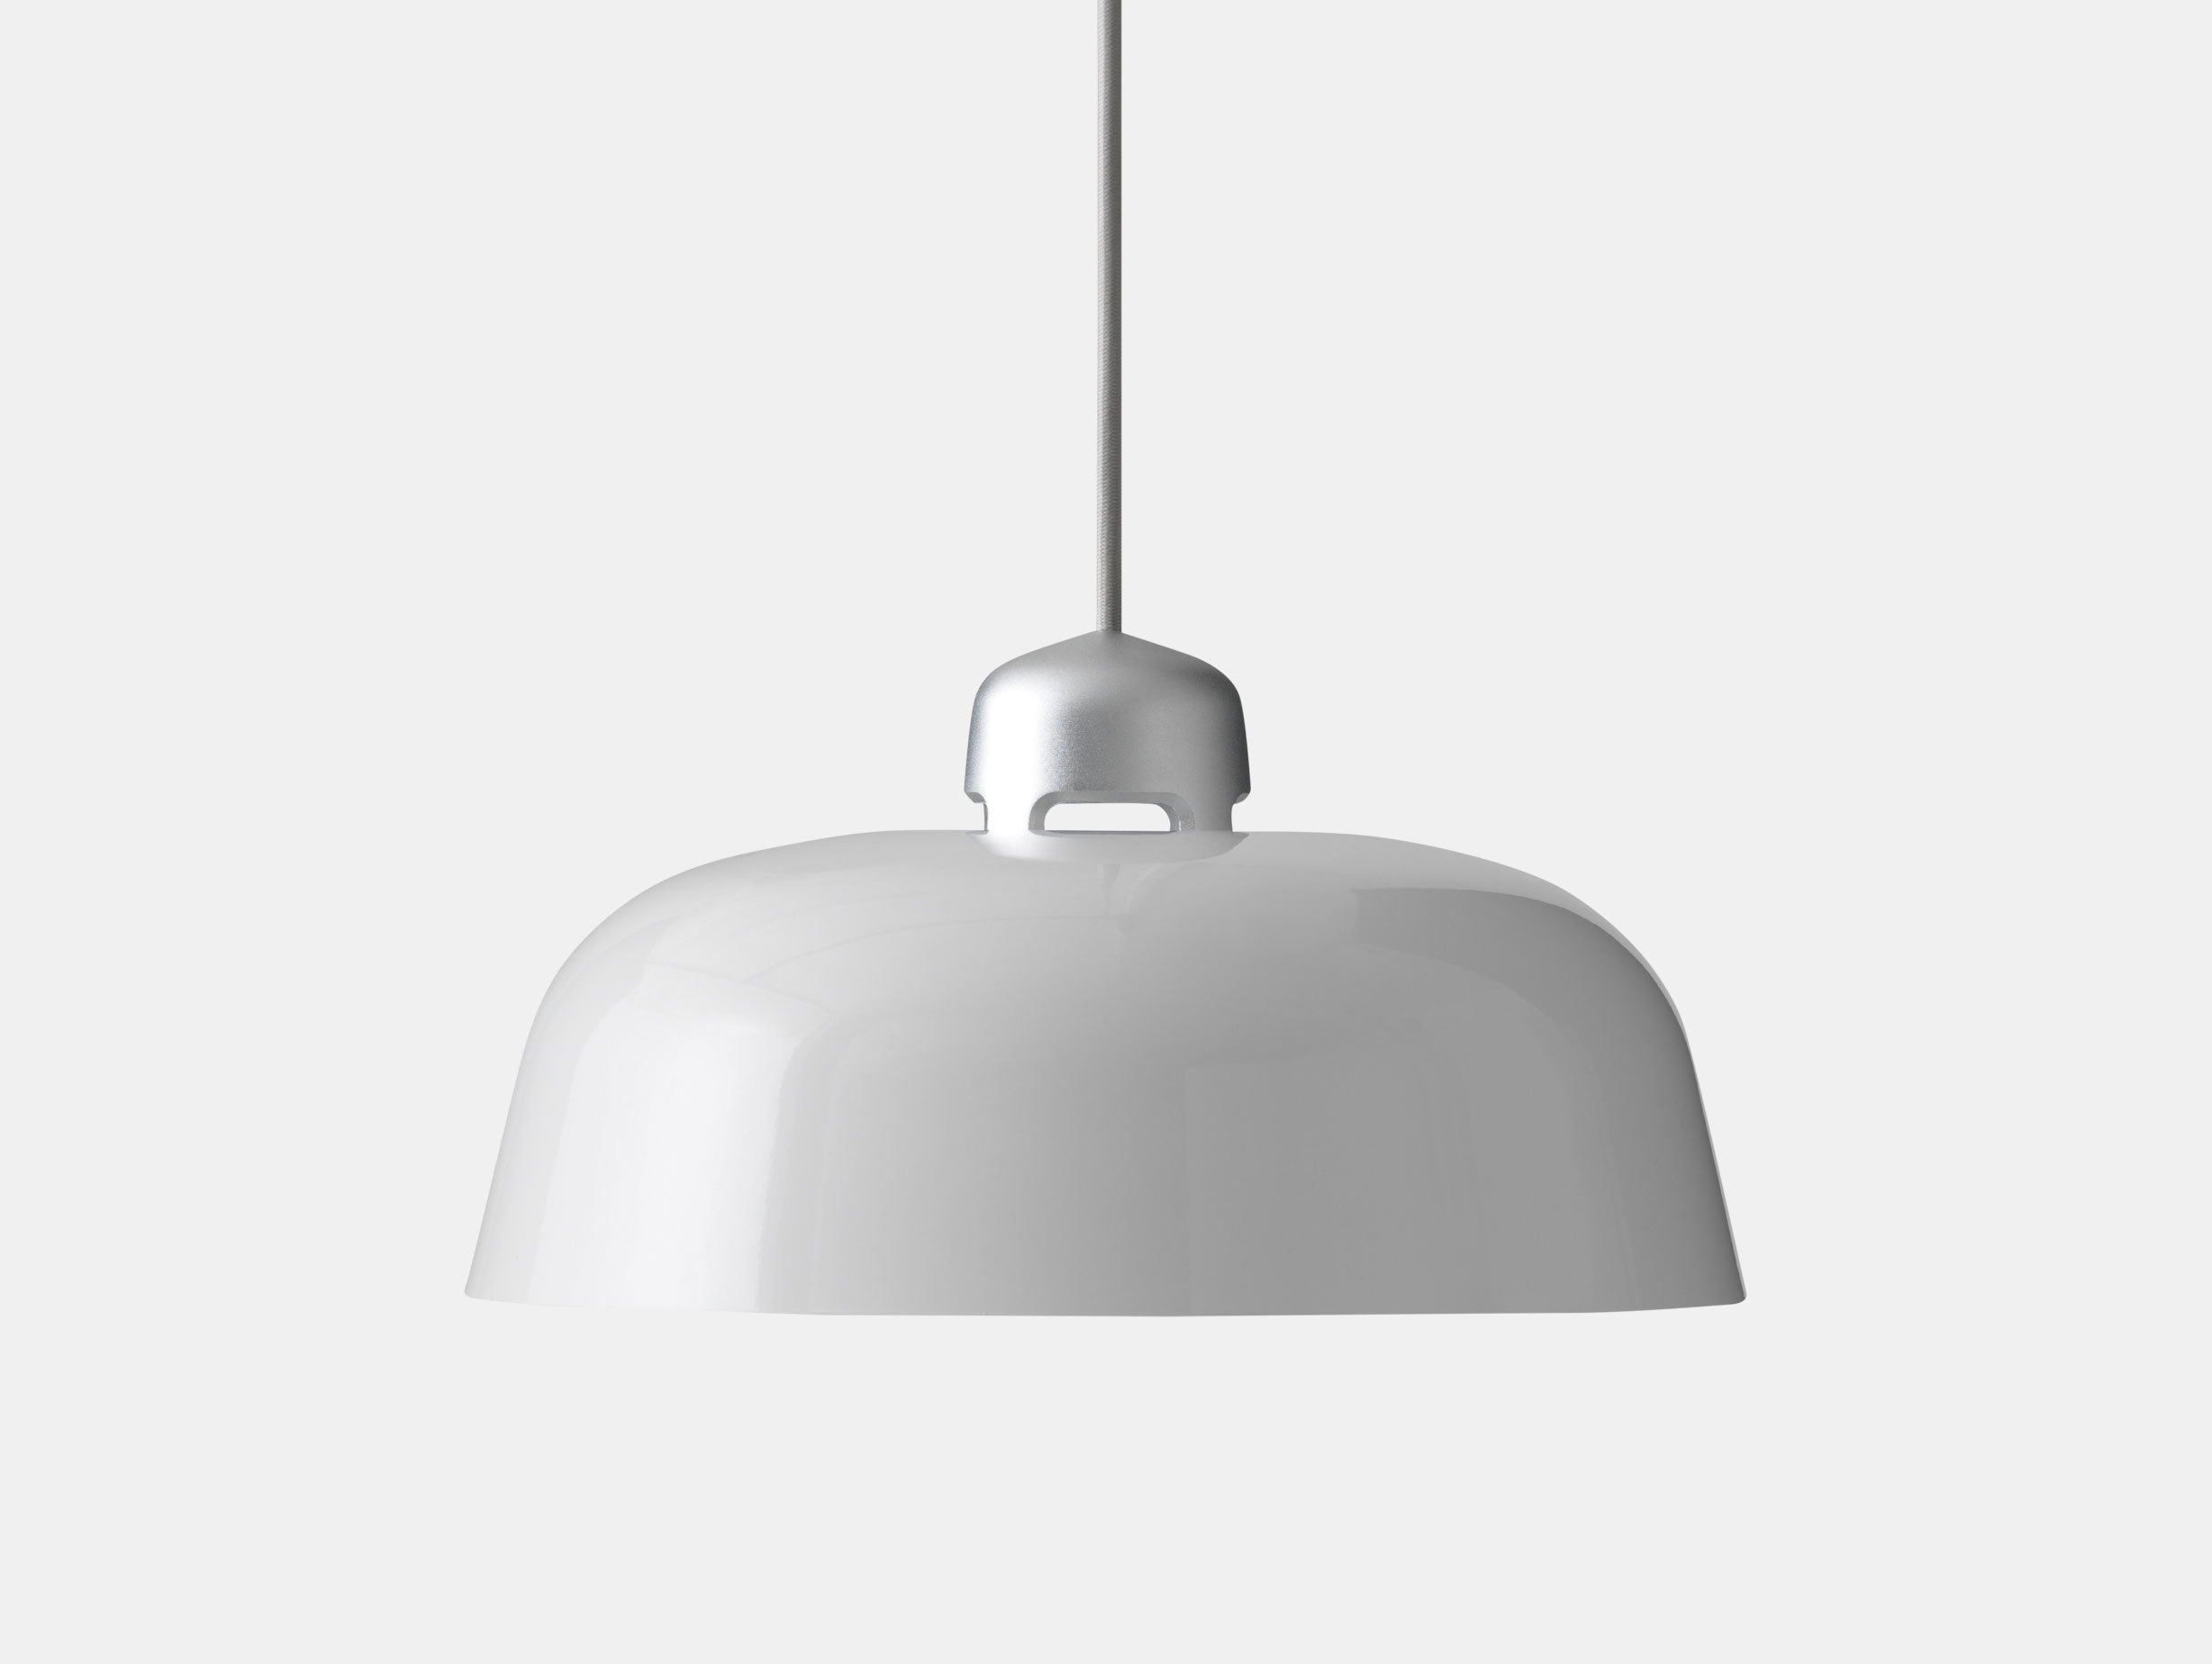 Wastberg W162 Dalston Pendant Light Silver Grey Sam Hecht Kim Colin